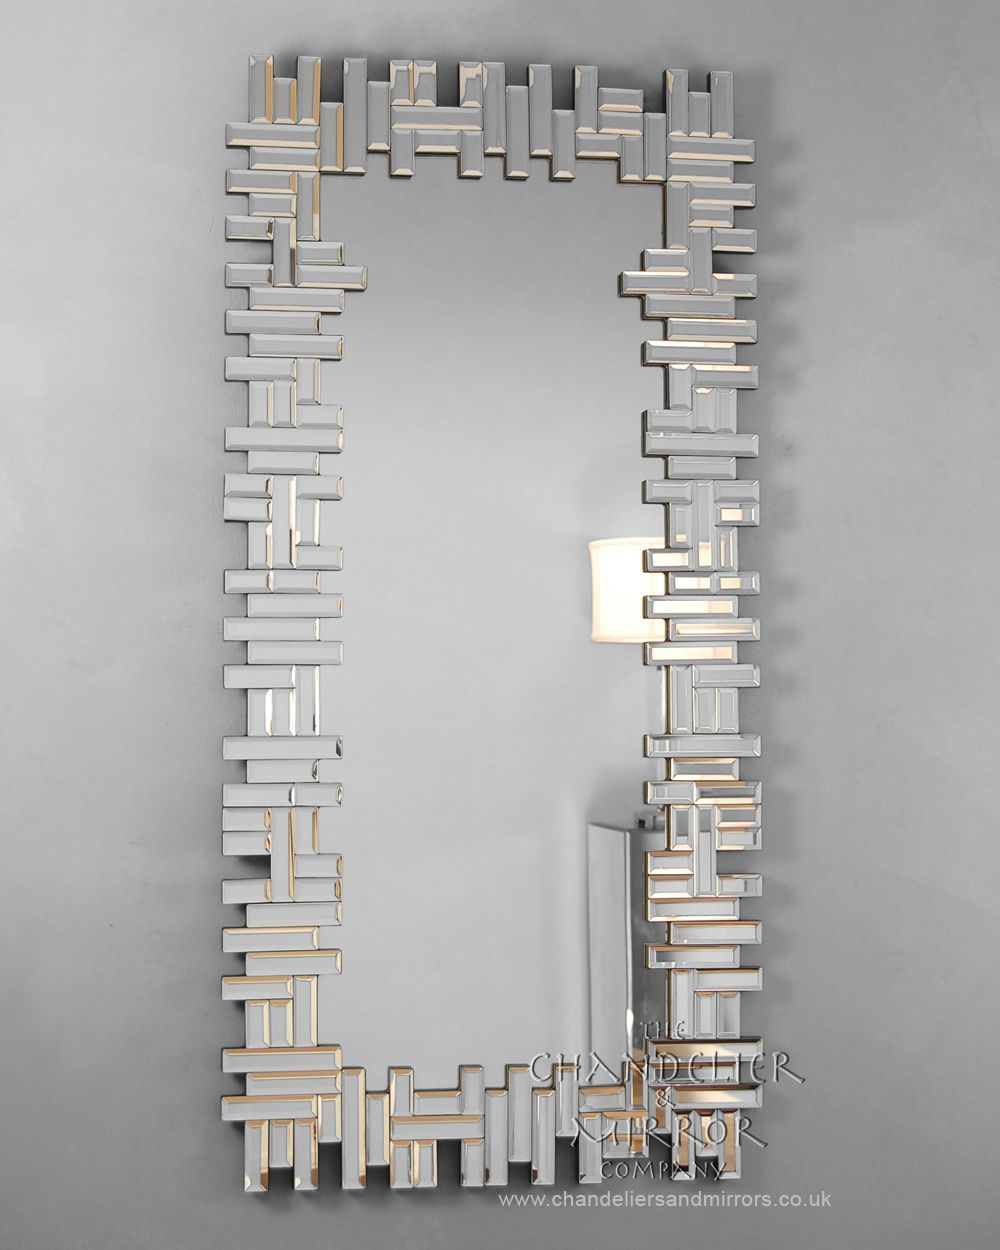 Bolzaneto Mirrors This Fabulous Quirky Venetian Puzzle Mirror With Its Rec In 2020 Modern Mirror Design Mirror Design Wall Mirror Frame Diy